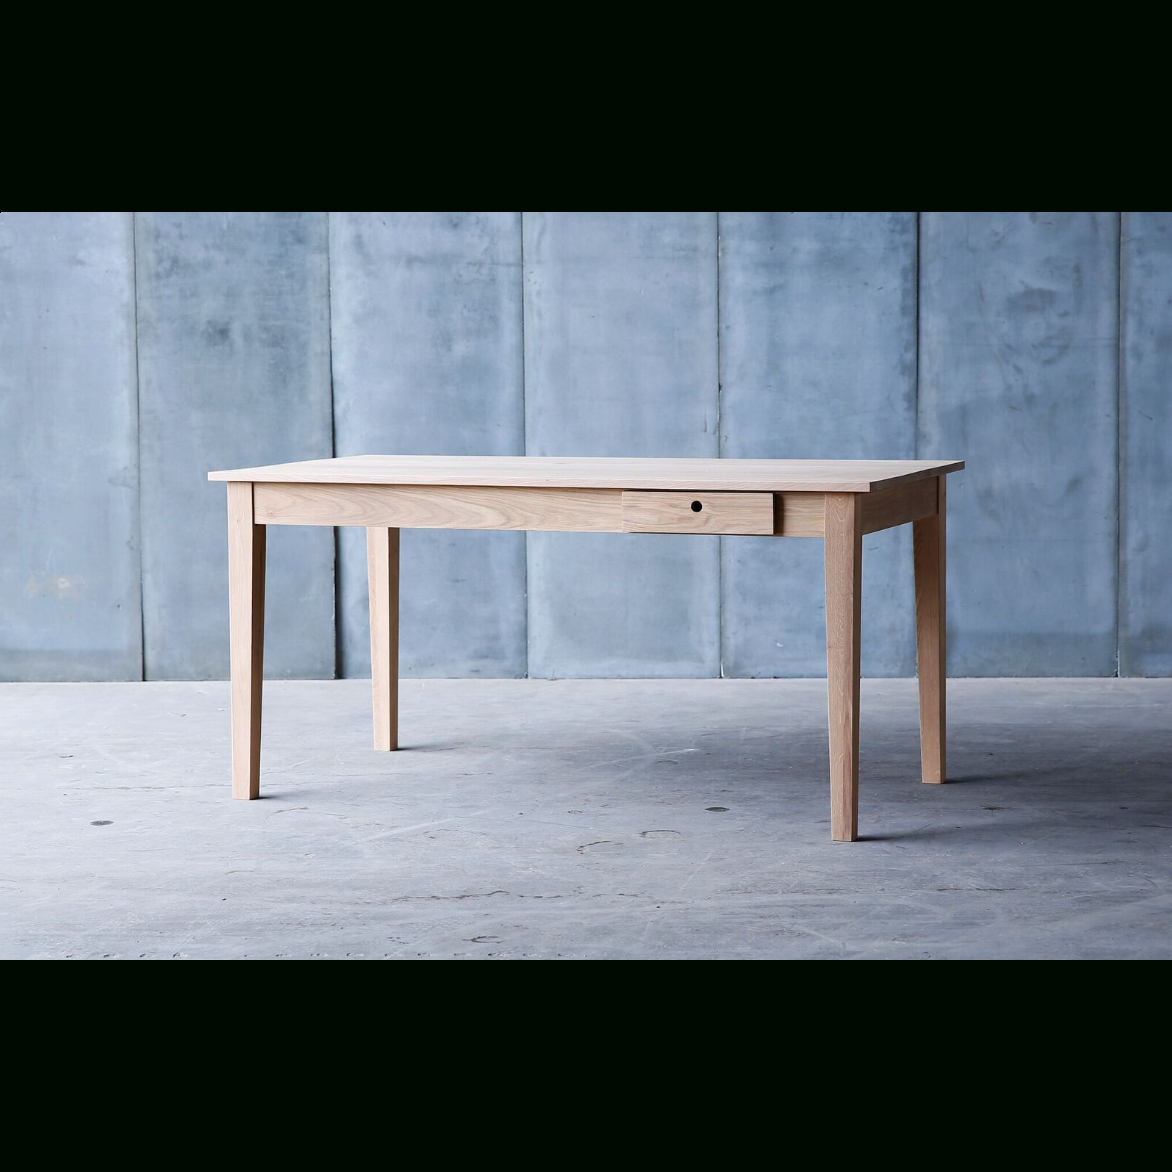 Heerenhuis Farmer Table Intended For Current Falmer 3 Piece Solid Wood Dining Sets (Image 12 of 20)